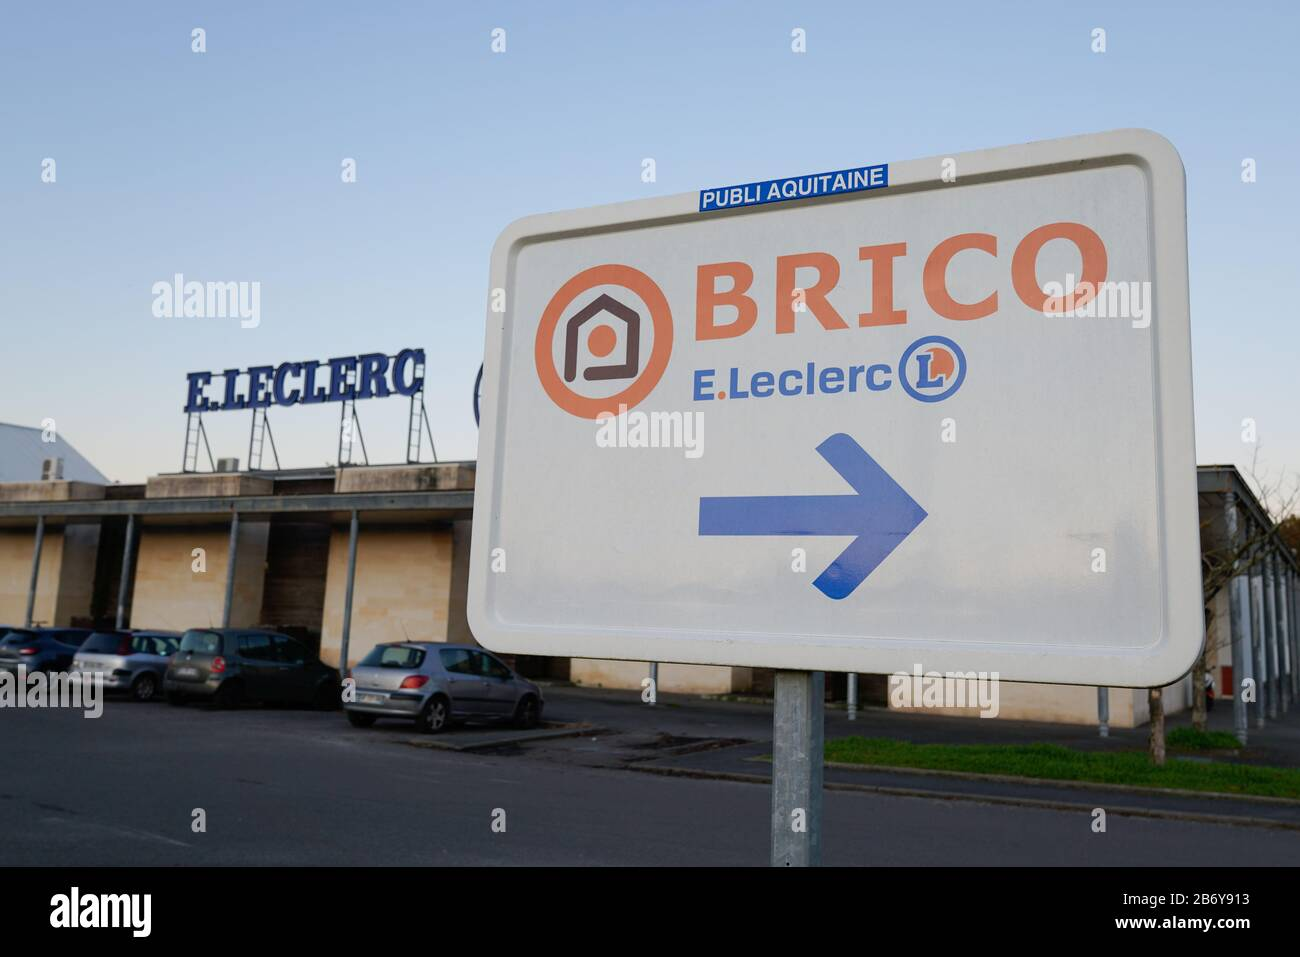 https www alamy com bordeaux aquitaine france 12 03 2019 bricoleclerc logo sign store brand of general commercial french eleclerc image348495087 html